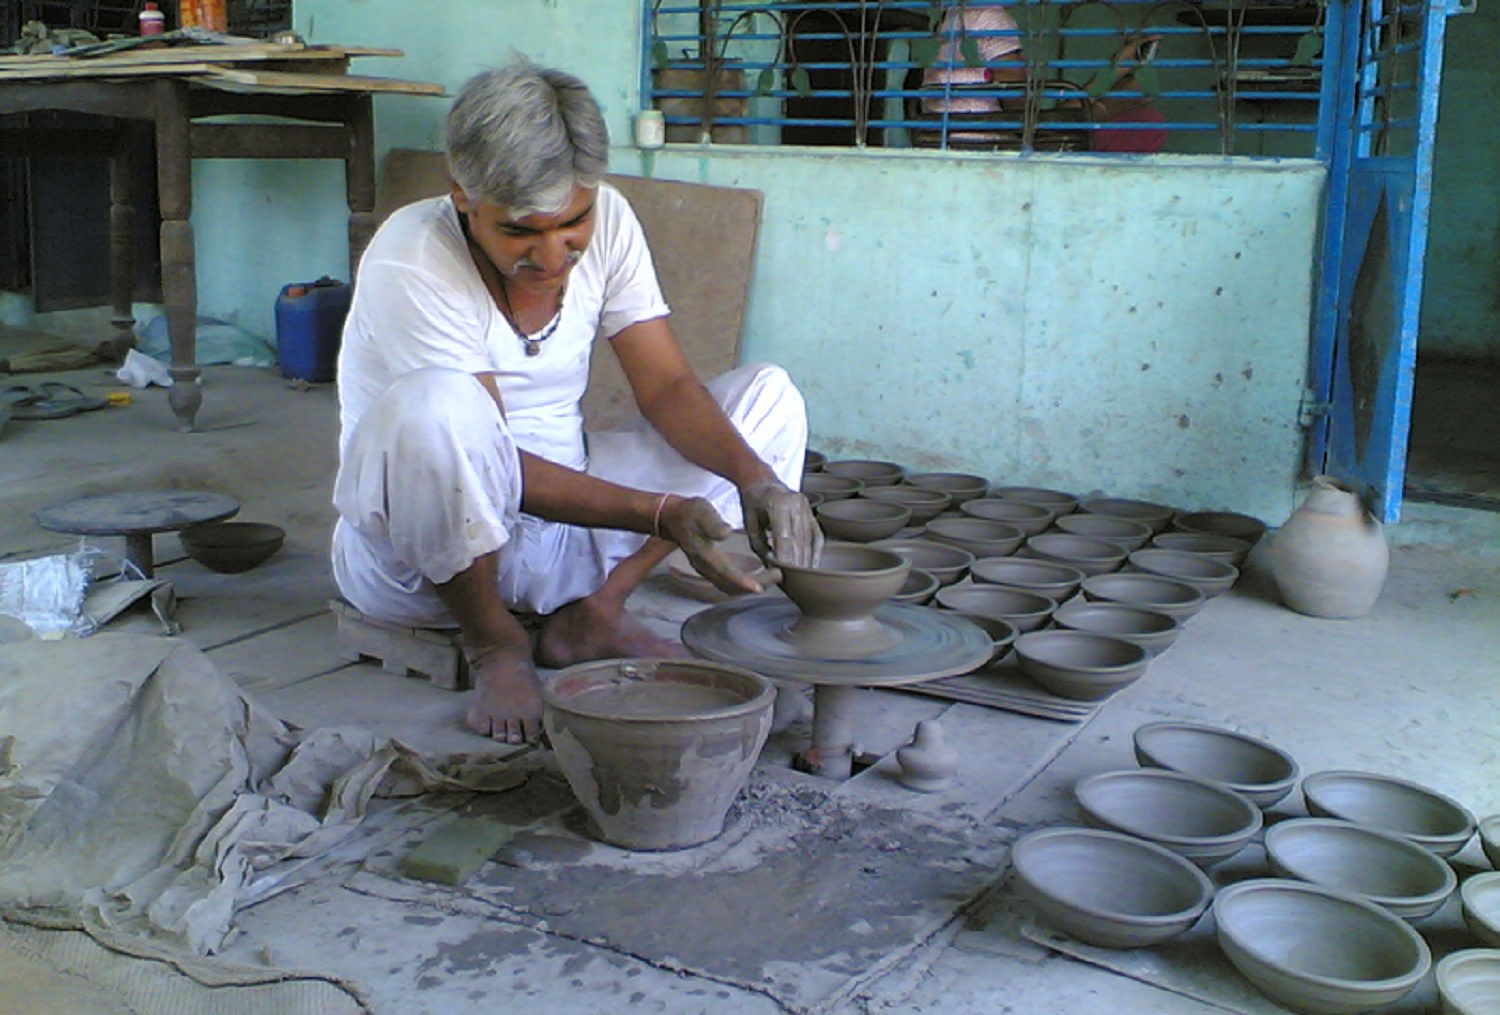 A glimpse of cottage industry